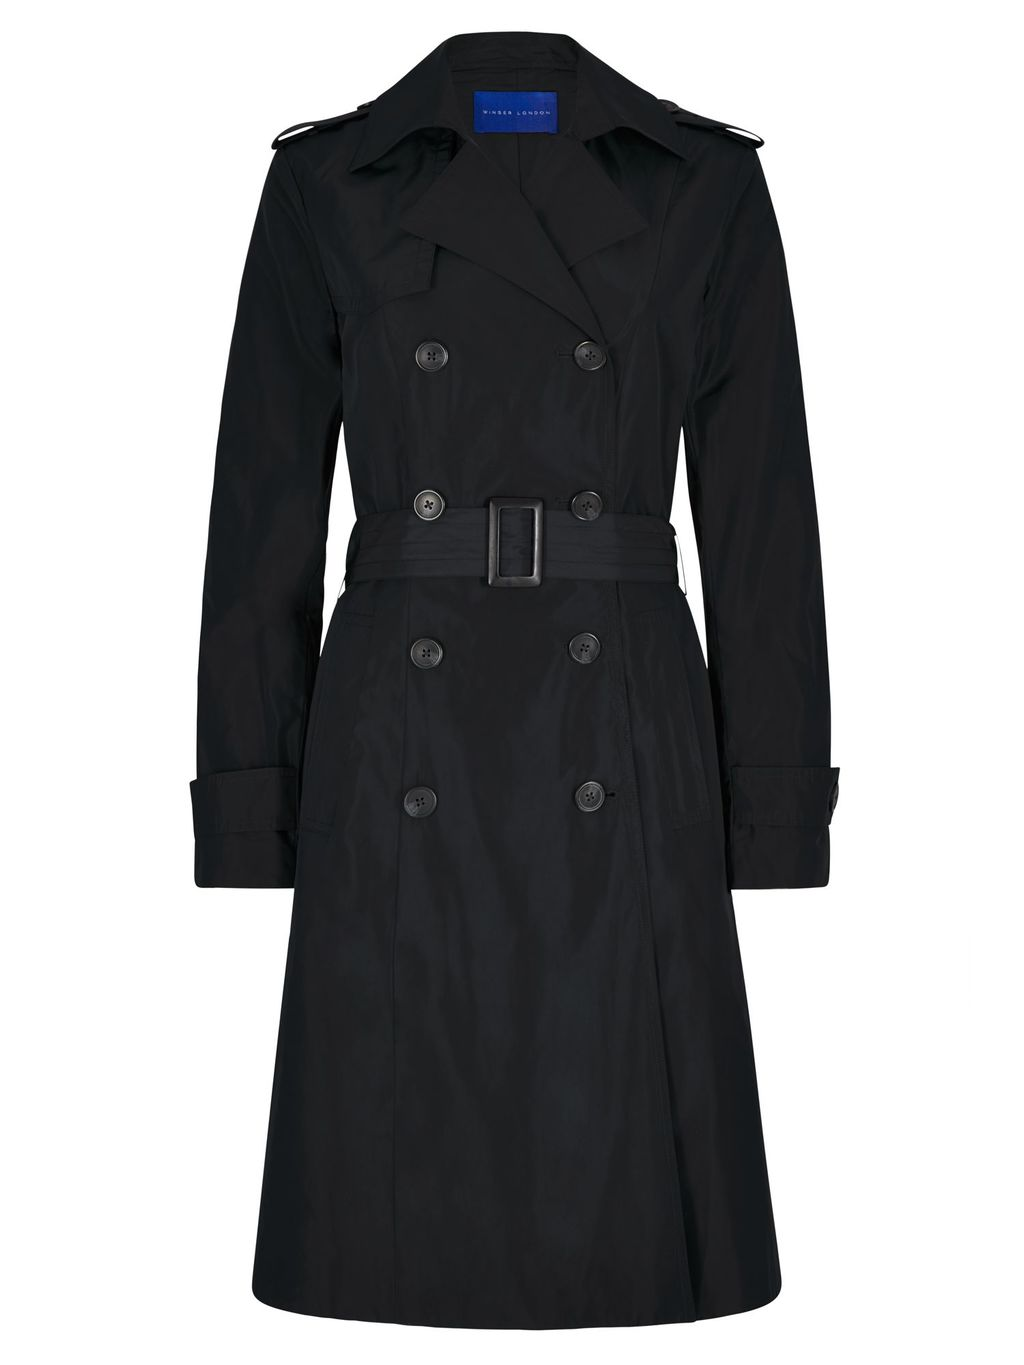 Winser Trench Coat, Black - pattern: plain; style: trench coat; length: on the knee; collar: standard lapel/rever collar; predominant colour: black; occasions: casual; fit: tailored/fitted; fibres: polyester/polyamide - 100%; waist detail: belted waist/tie at waist/drawstring; sleeve length: long sleeve; sleeve style: standard; collar break: medium; pattern type: fabric; texture group: woven bulky/heavy; season: s/s 2016; wardrobe: basic